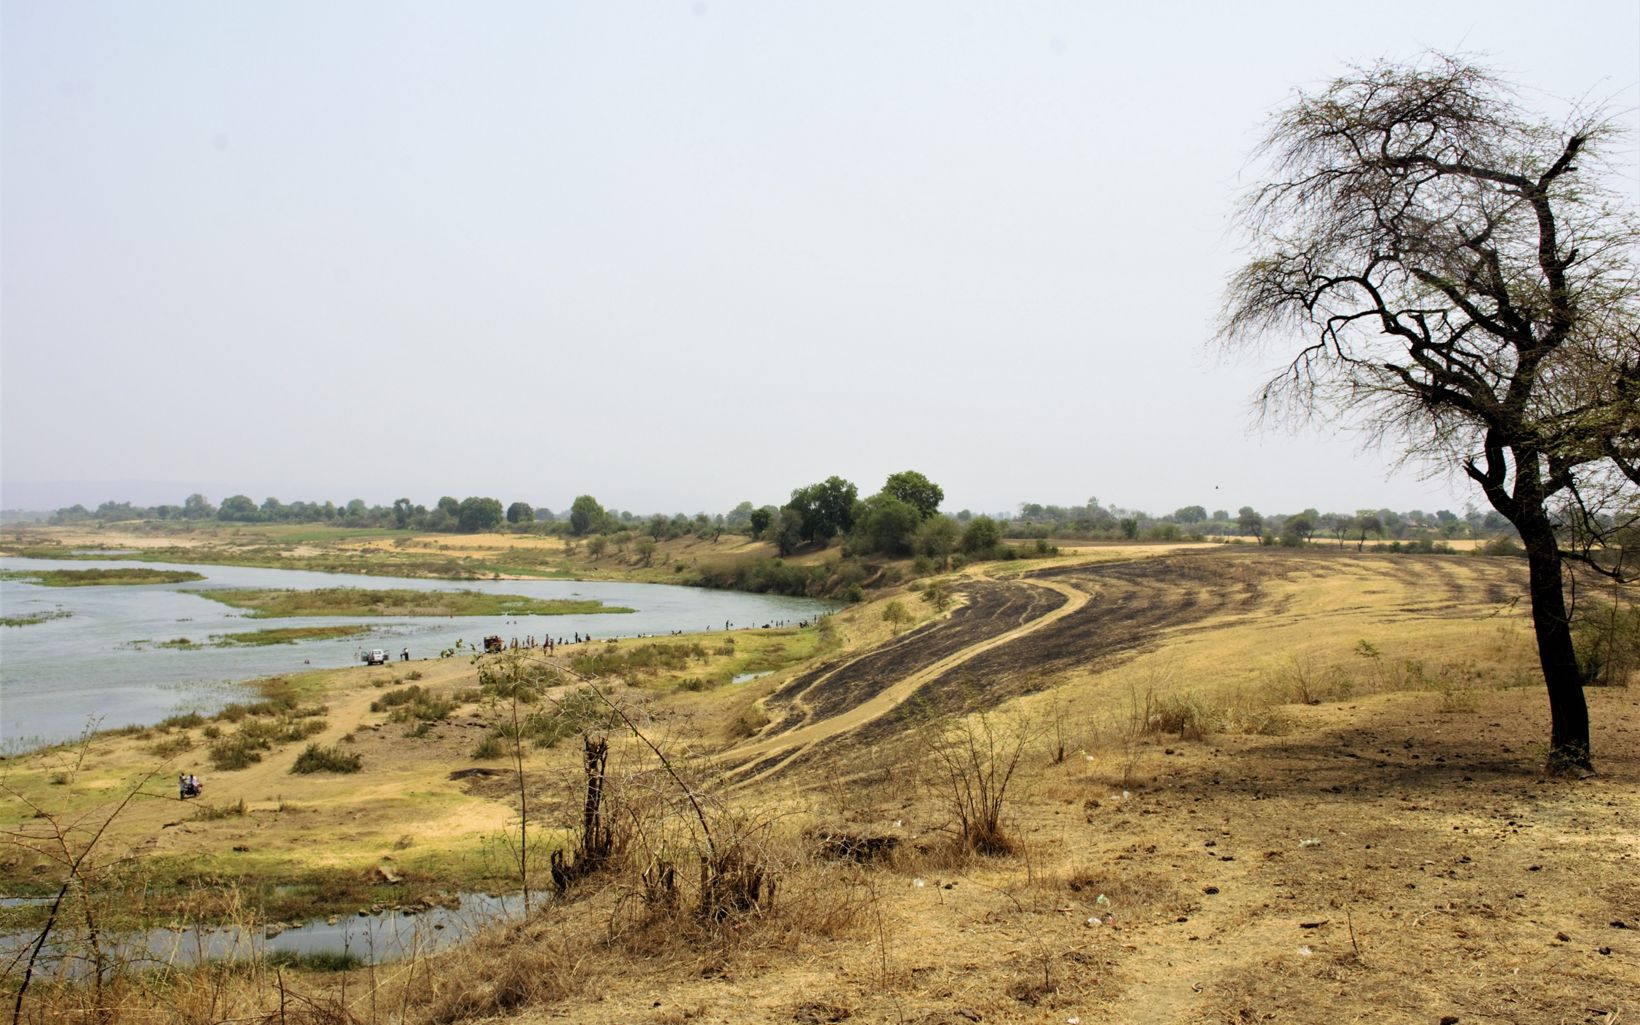 riverside banks converted to agricultural lands face the threat of crop residue burning